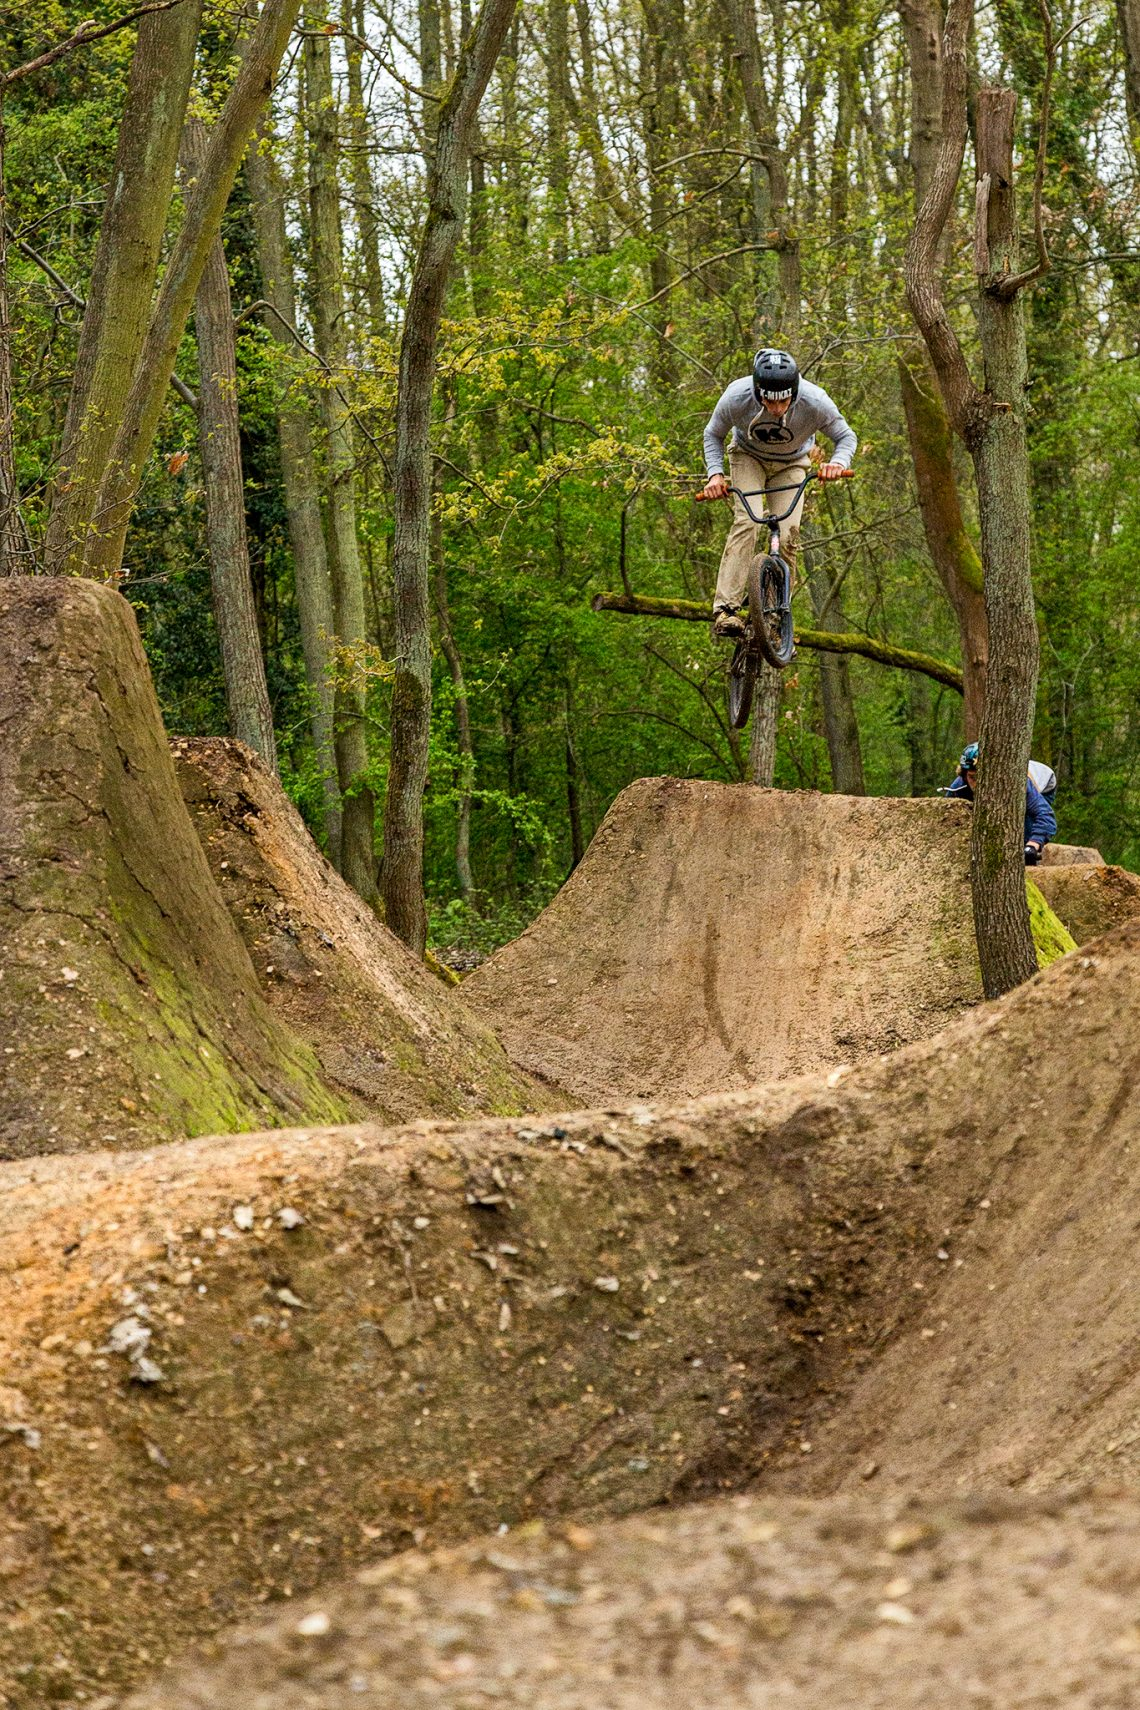 Jam bmx et vtt au trail du big up crew en after du PCR supercross du 24 avril 2016.